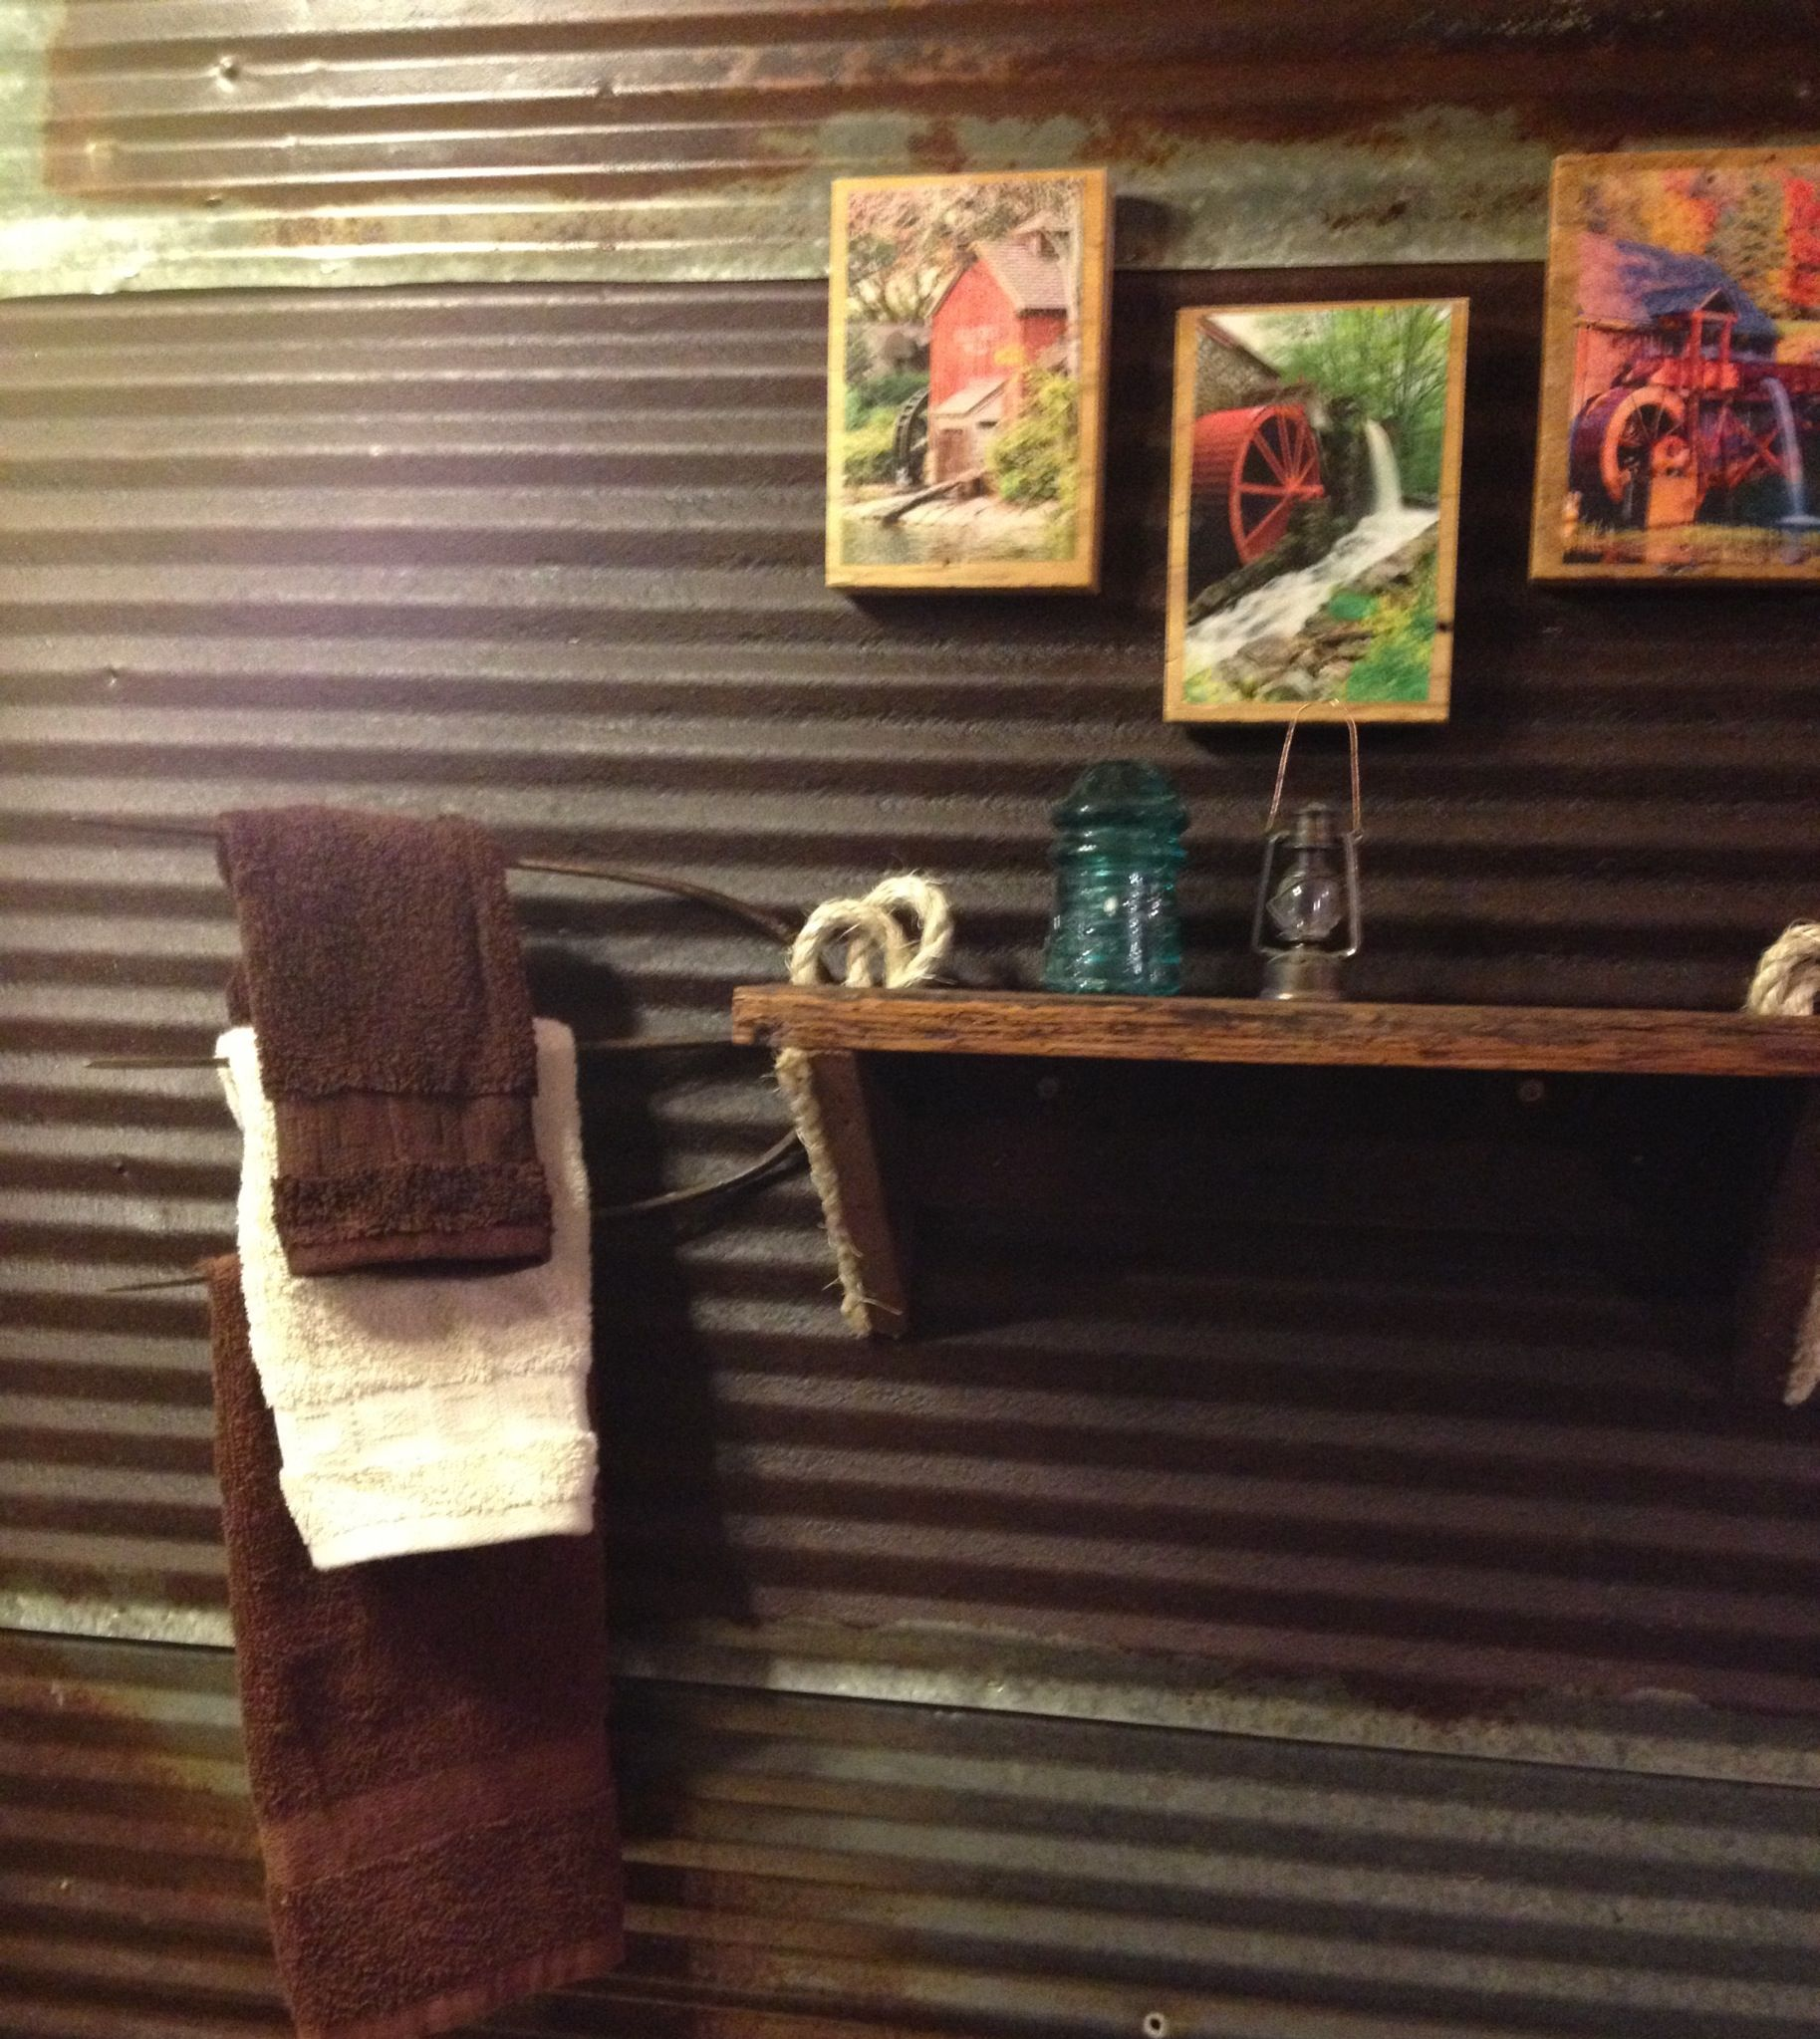 Pitch fork towel rack made into barn wood shelf | Our house being ...